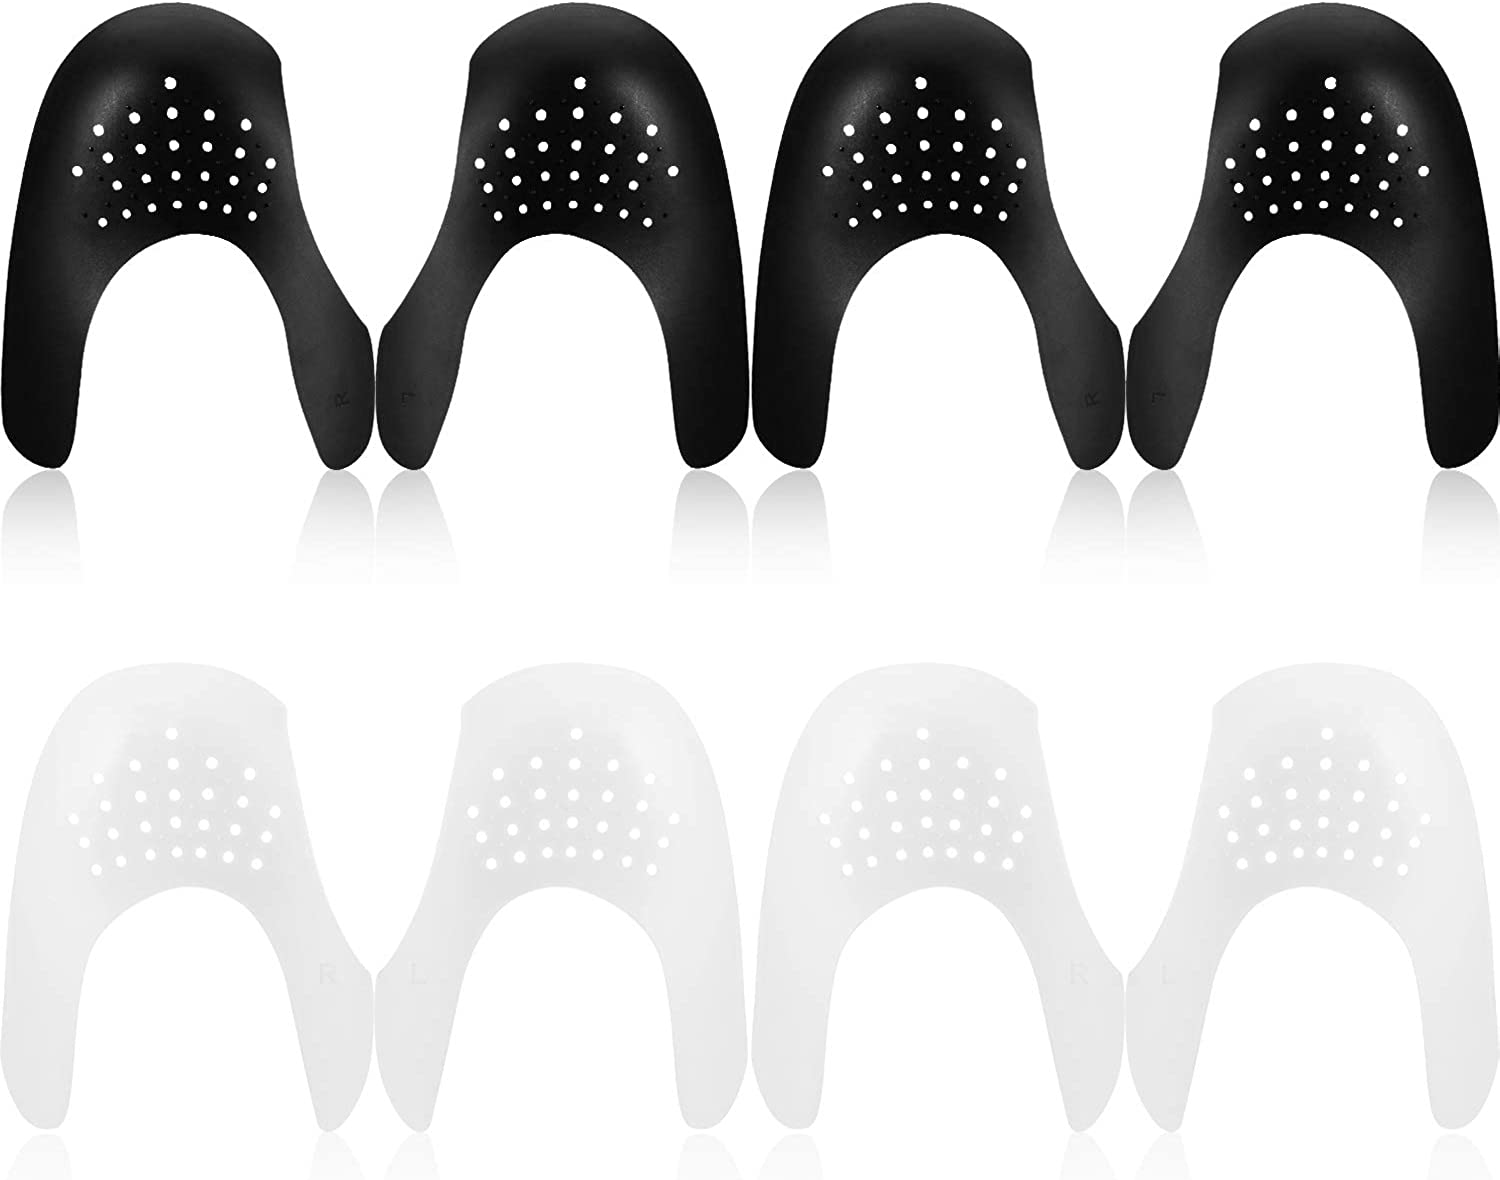 4 Pairs Shoes Creases Protector Toe Box Decreaser Prevent Sport Shoes Crease Indentation for Mens 7-12// Womens 5-8